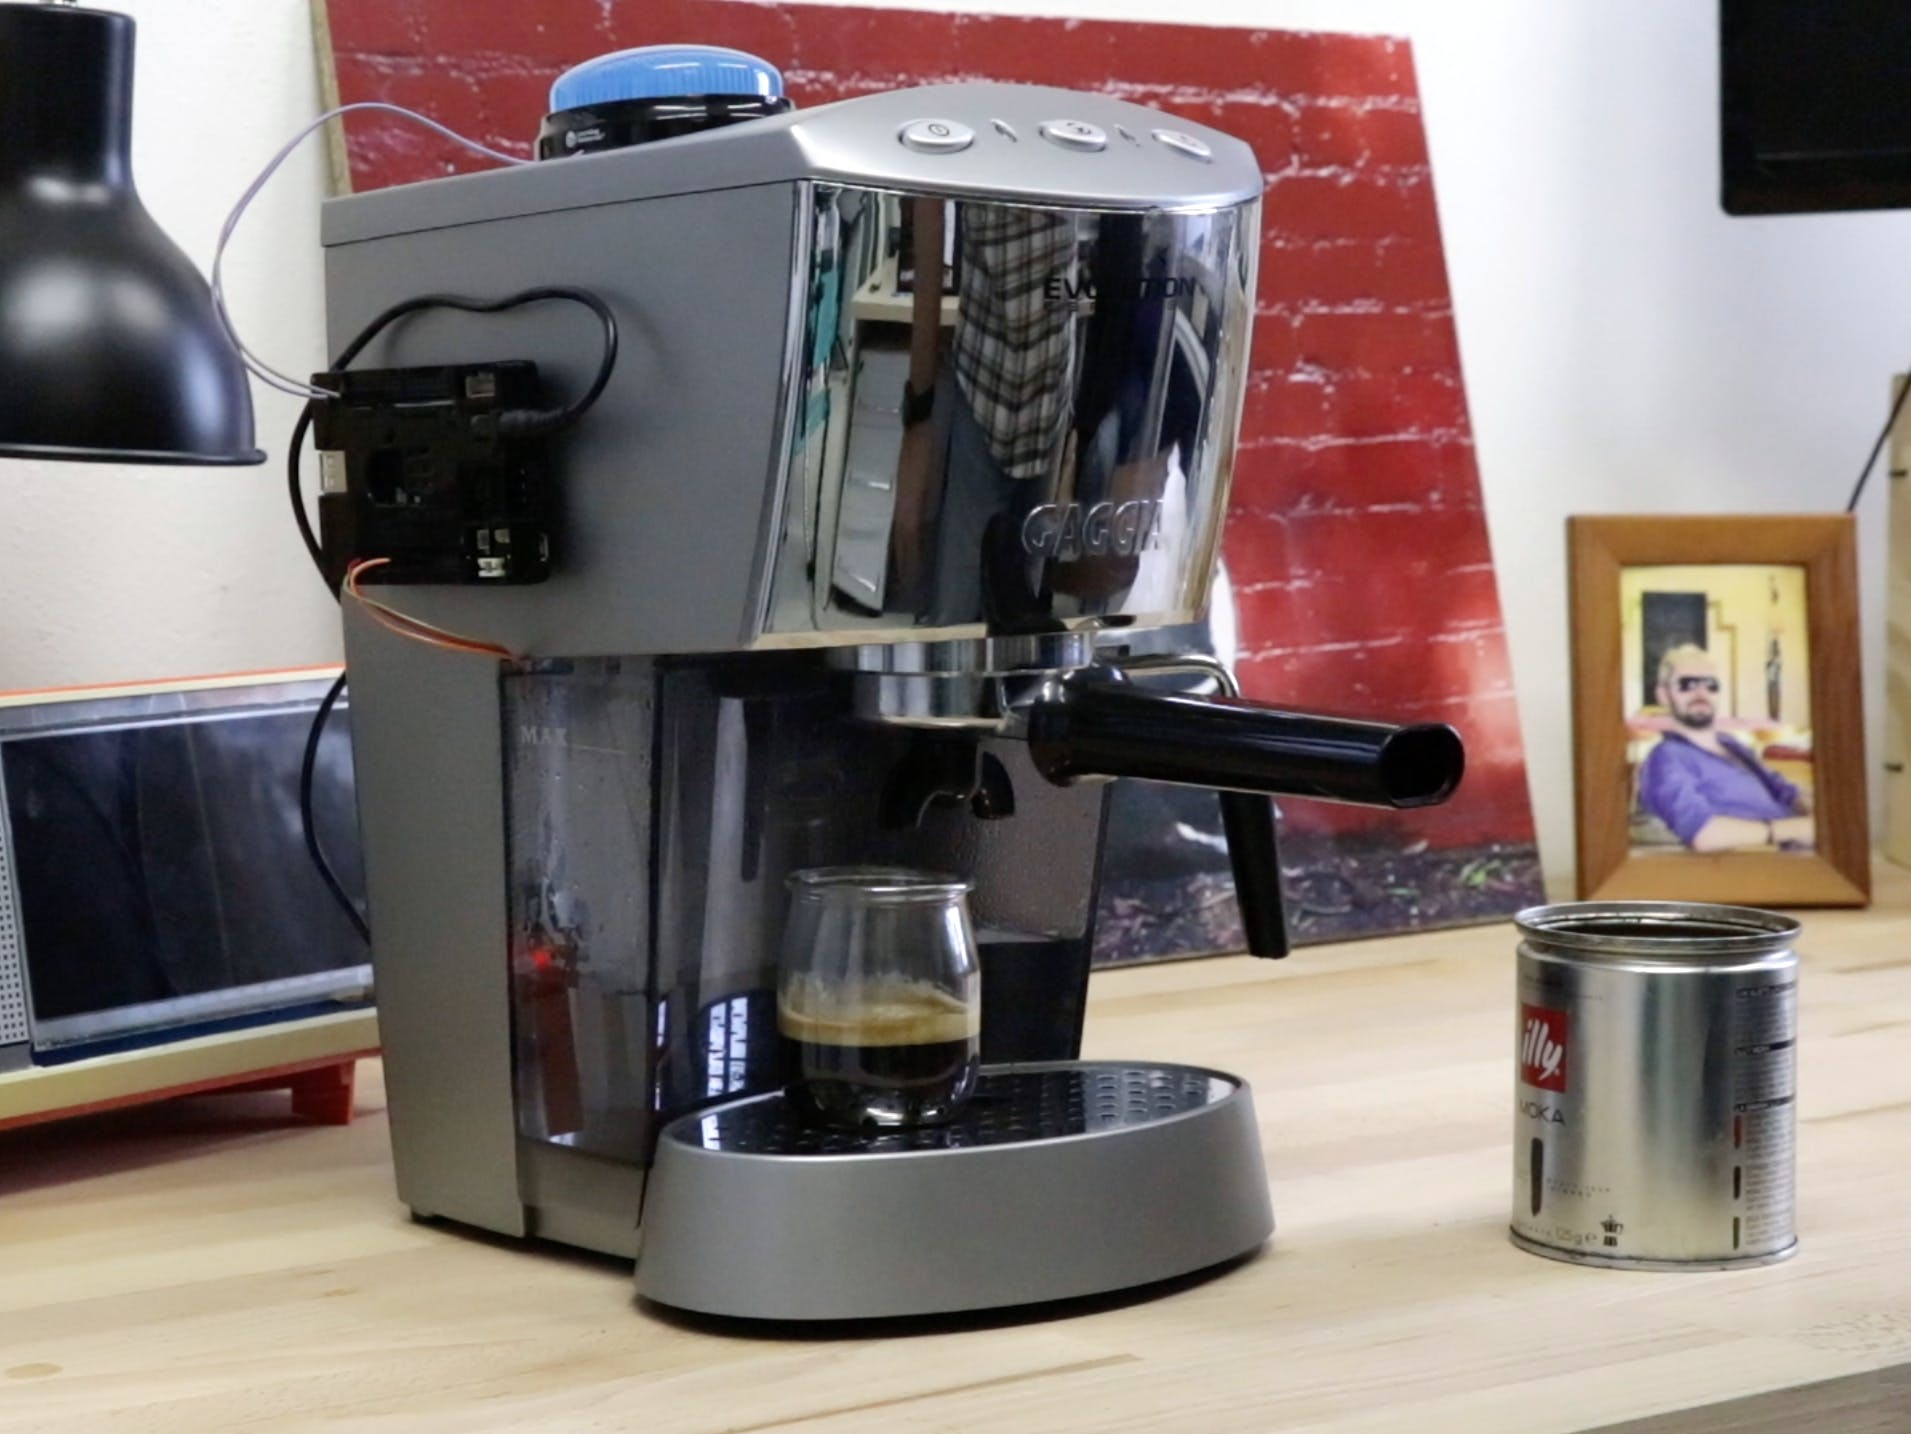 Coffee Machine Water Level Detection with UDOO IoT CLOUD